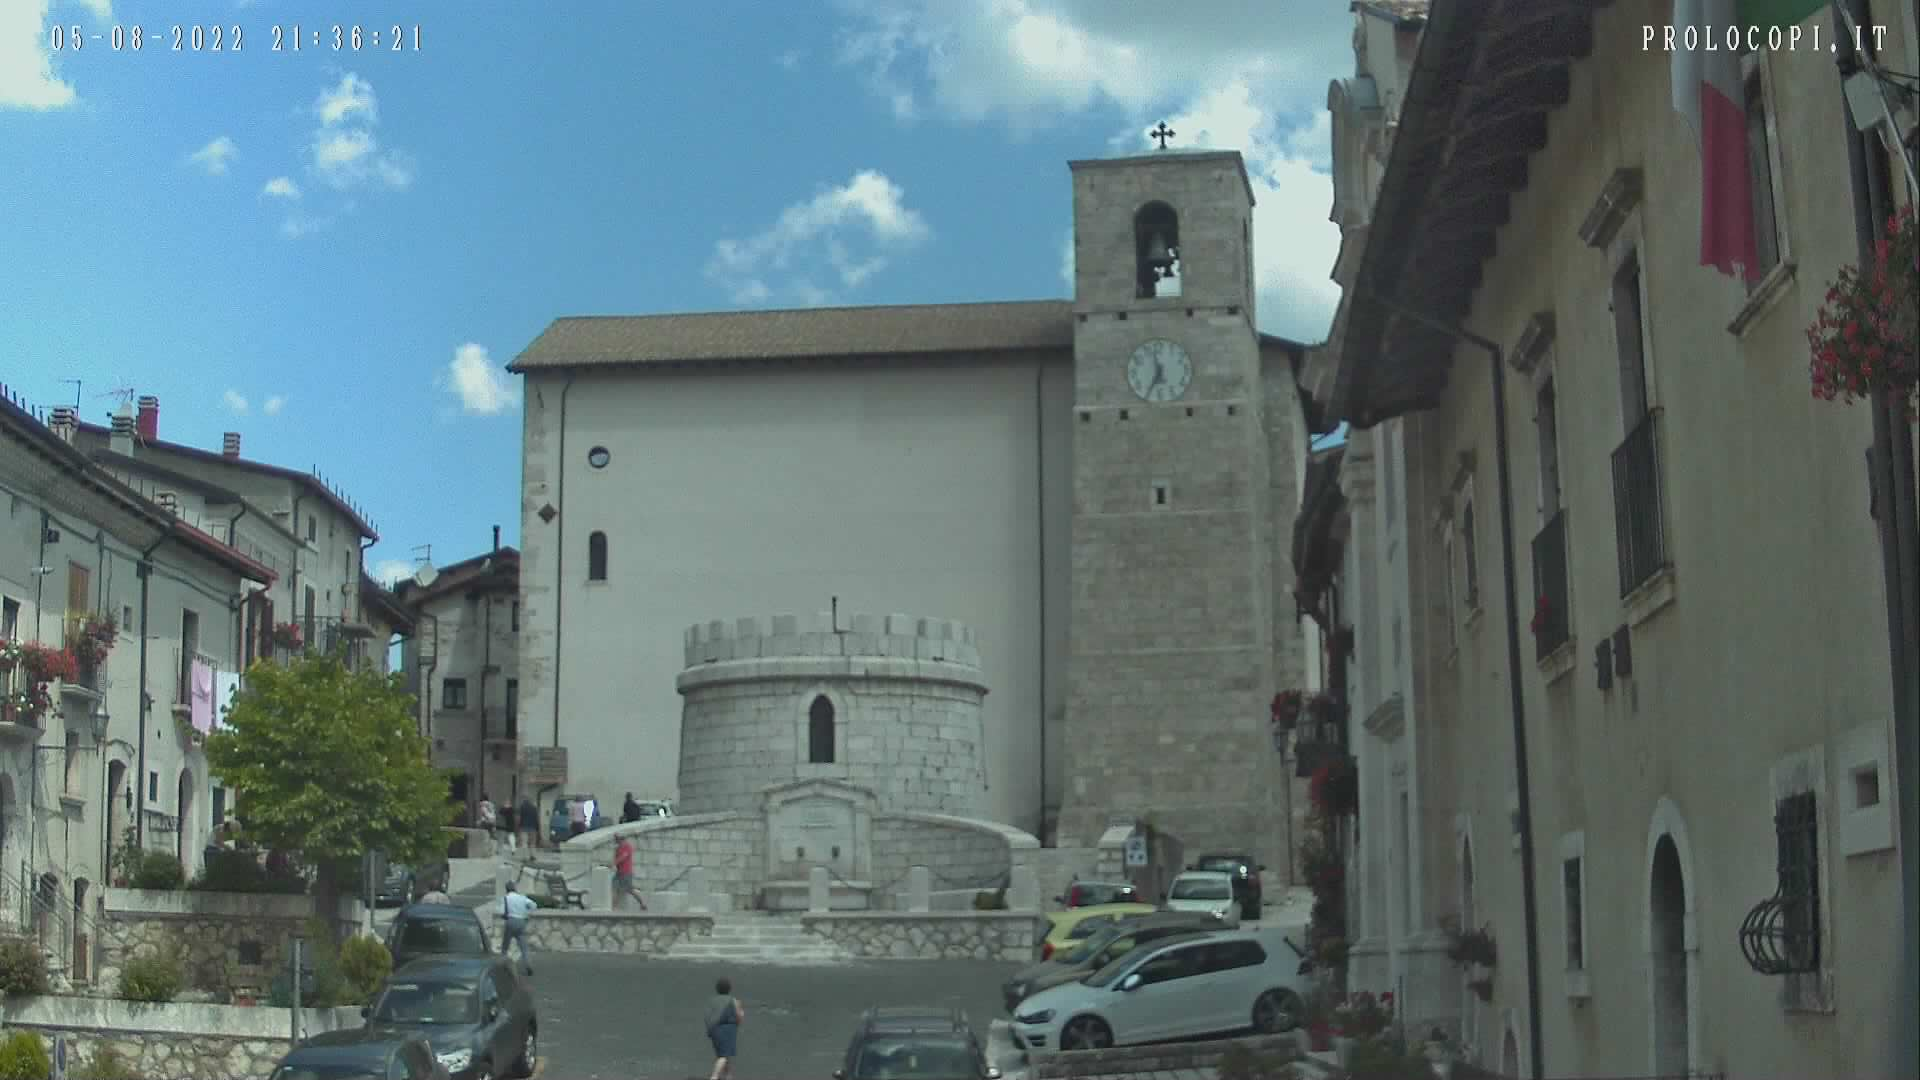 WebCam Piazza Opi